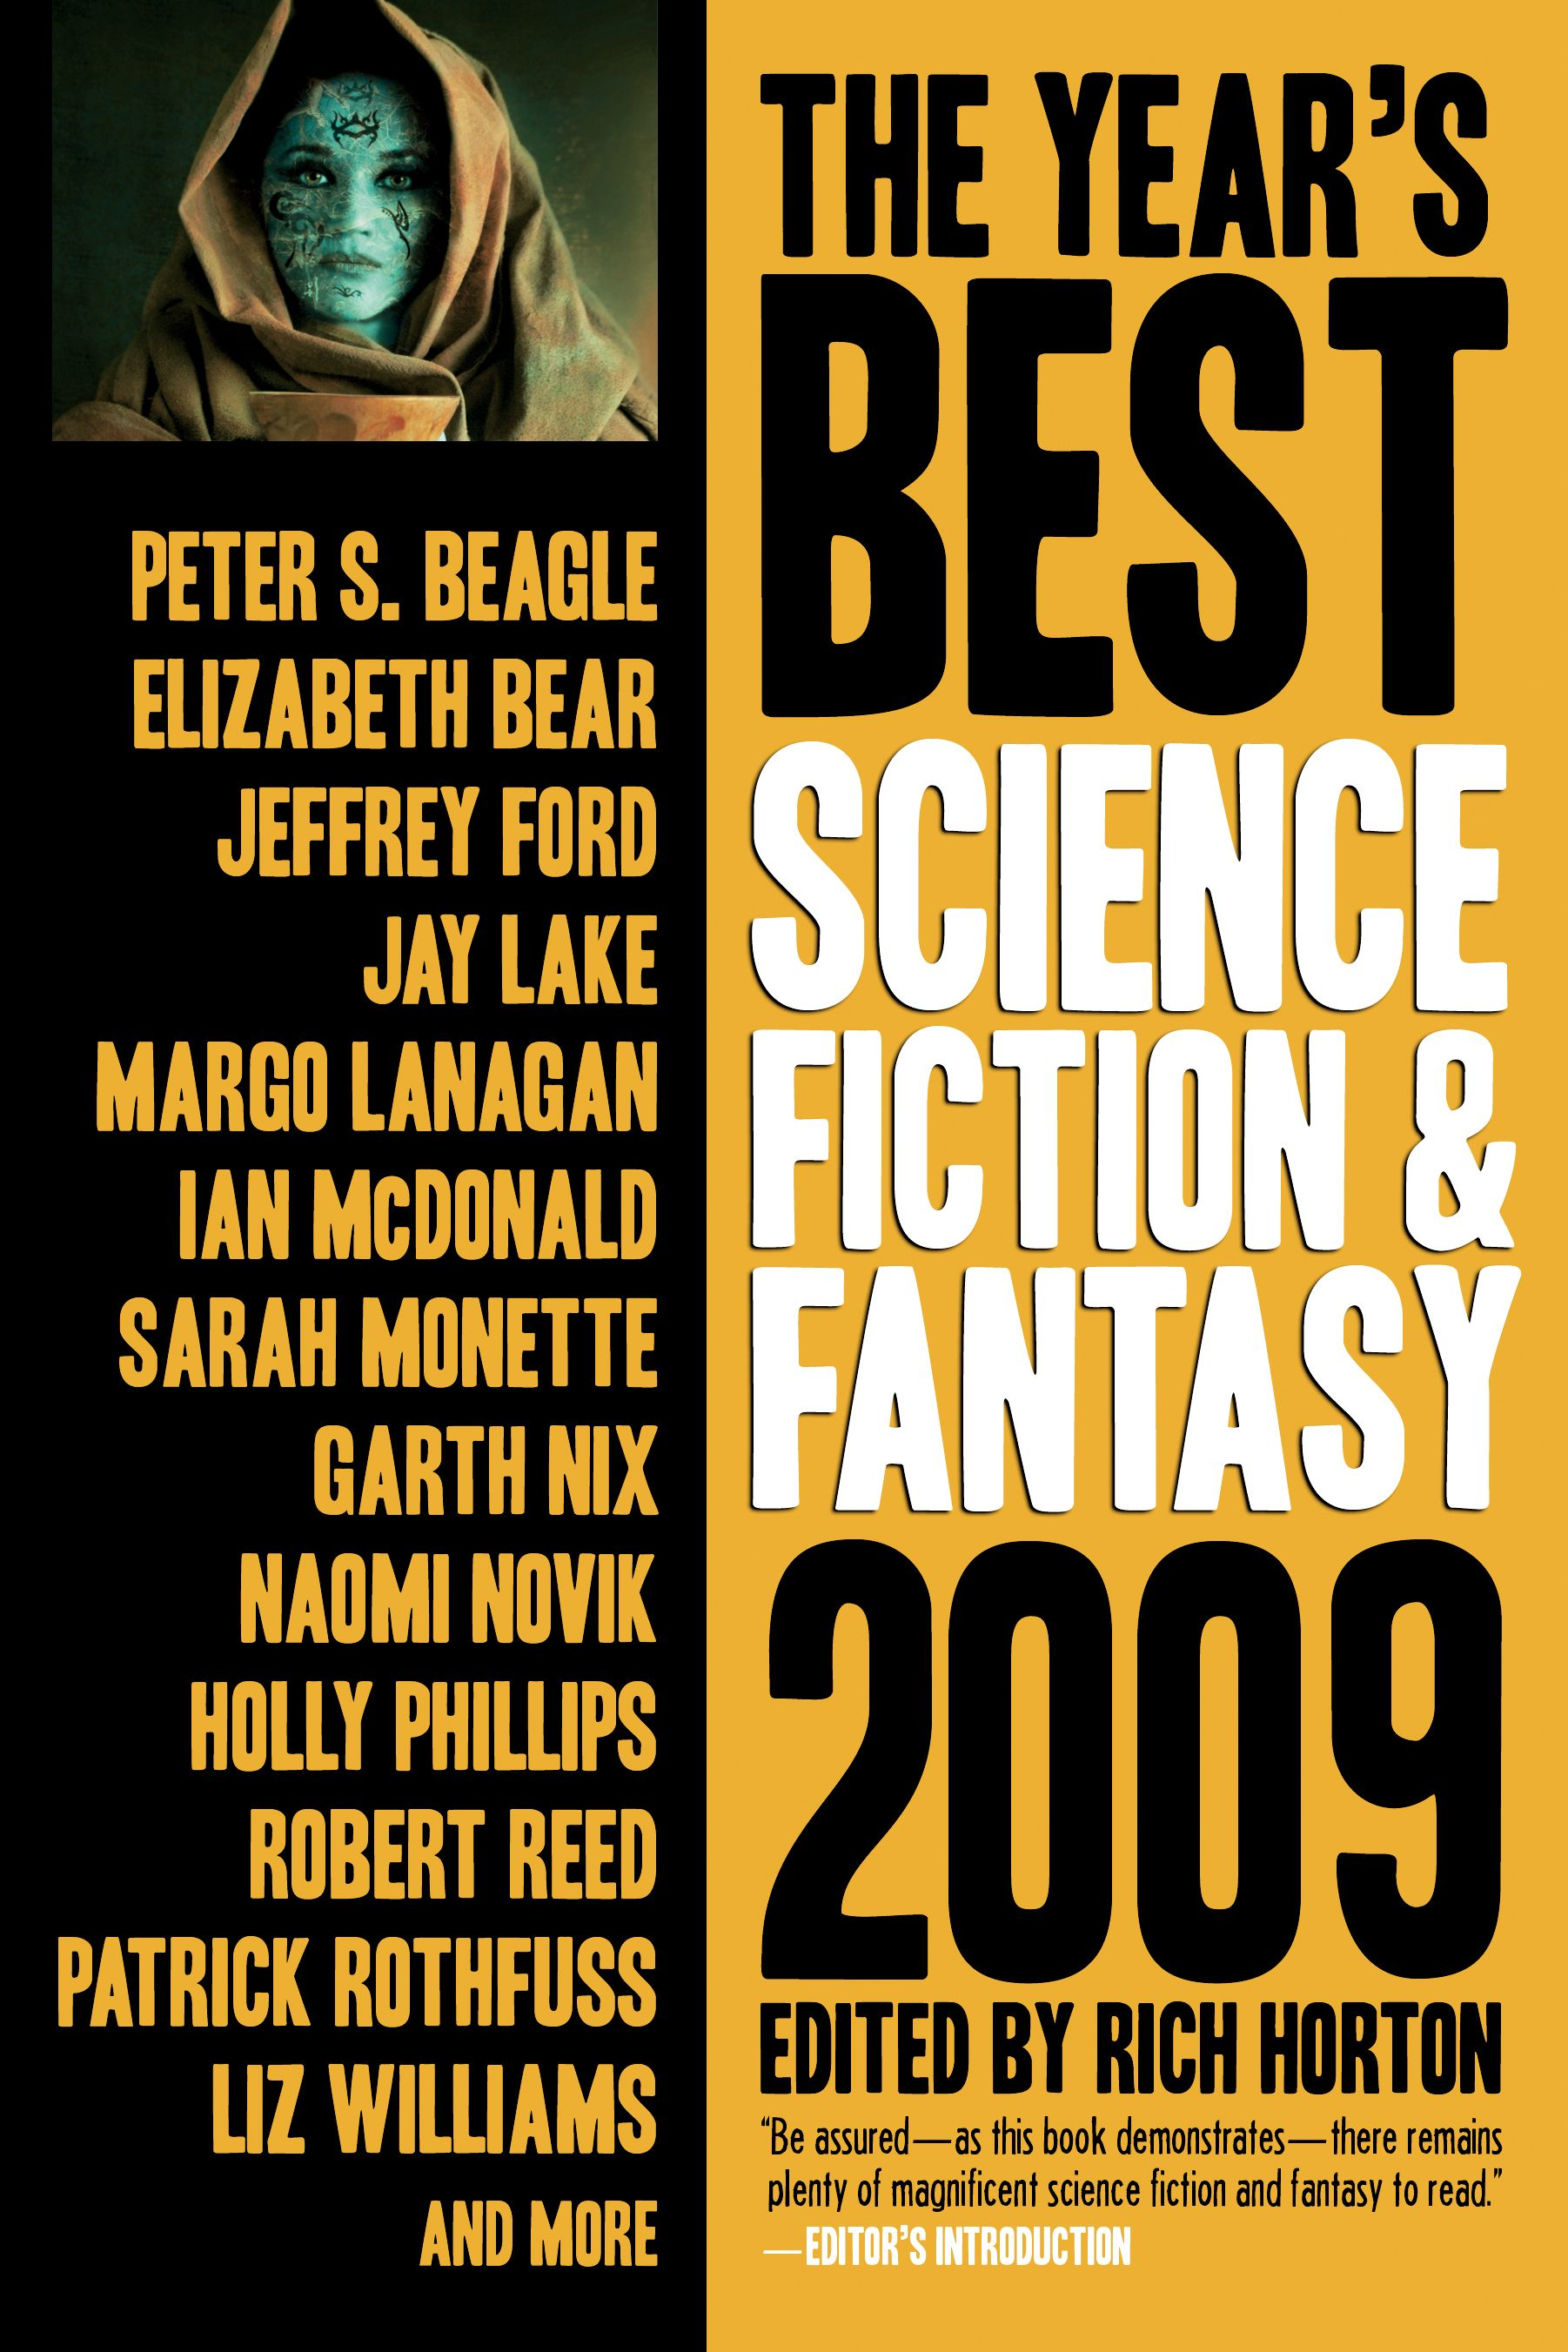 The Year's Best Science Fiction & Fantasy 2009 Edition By: Rich Horton